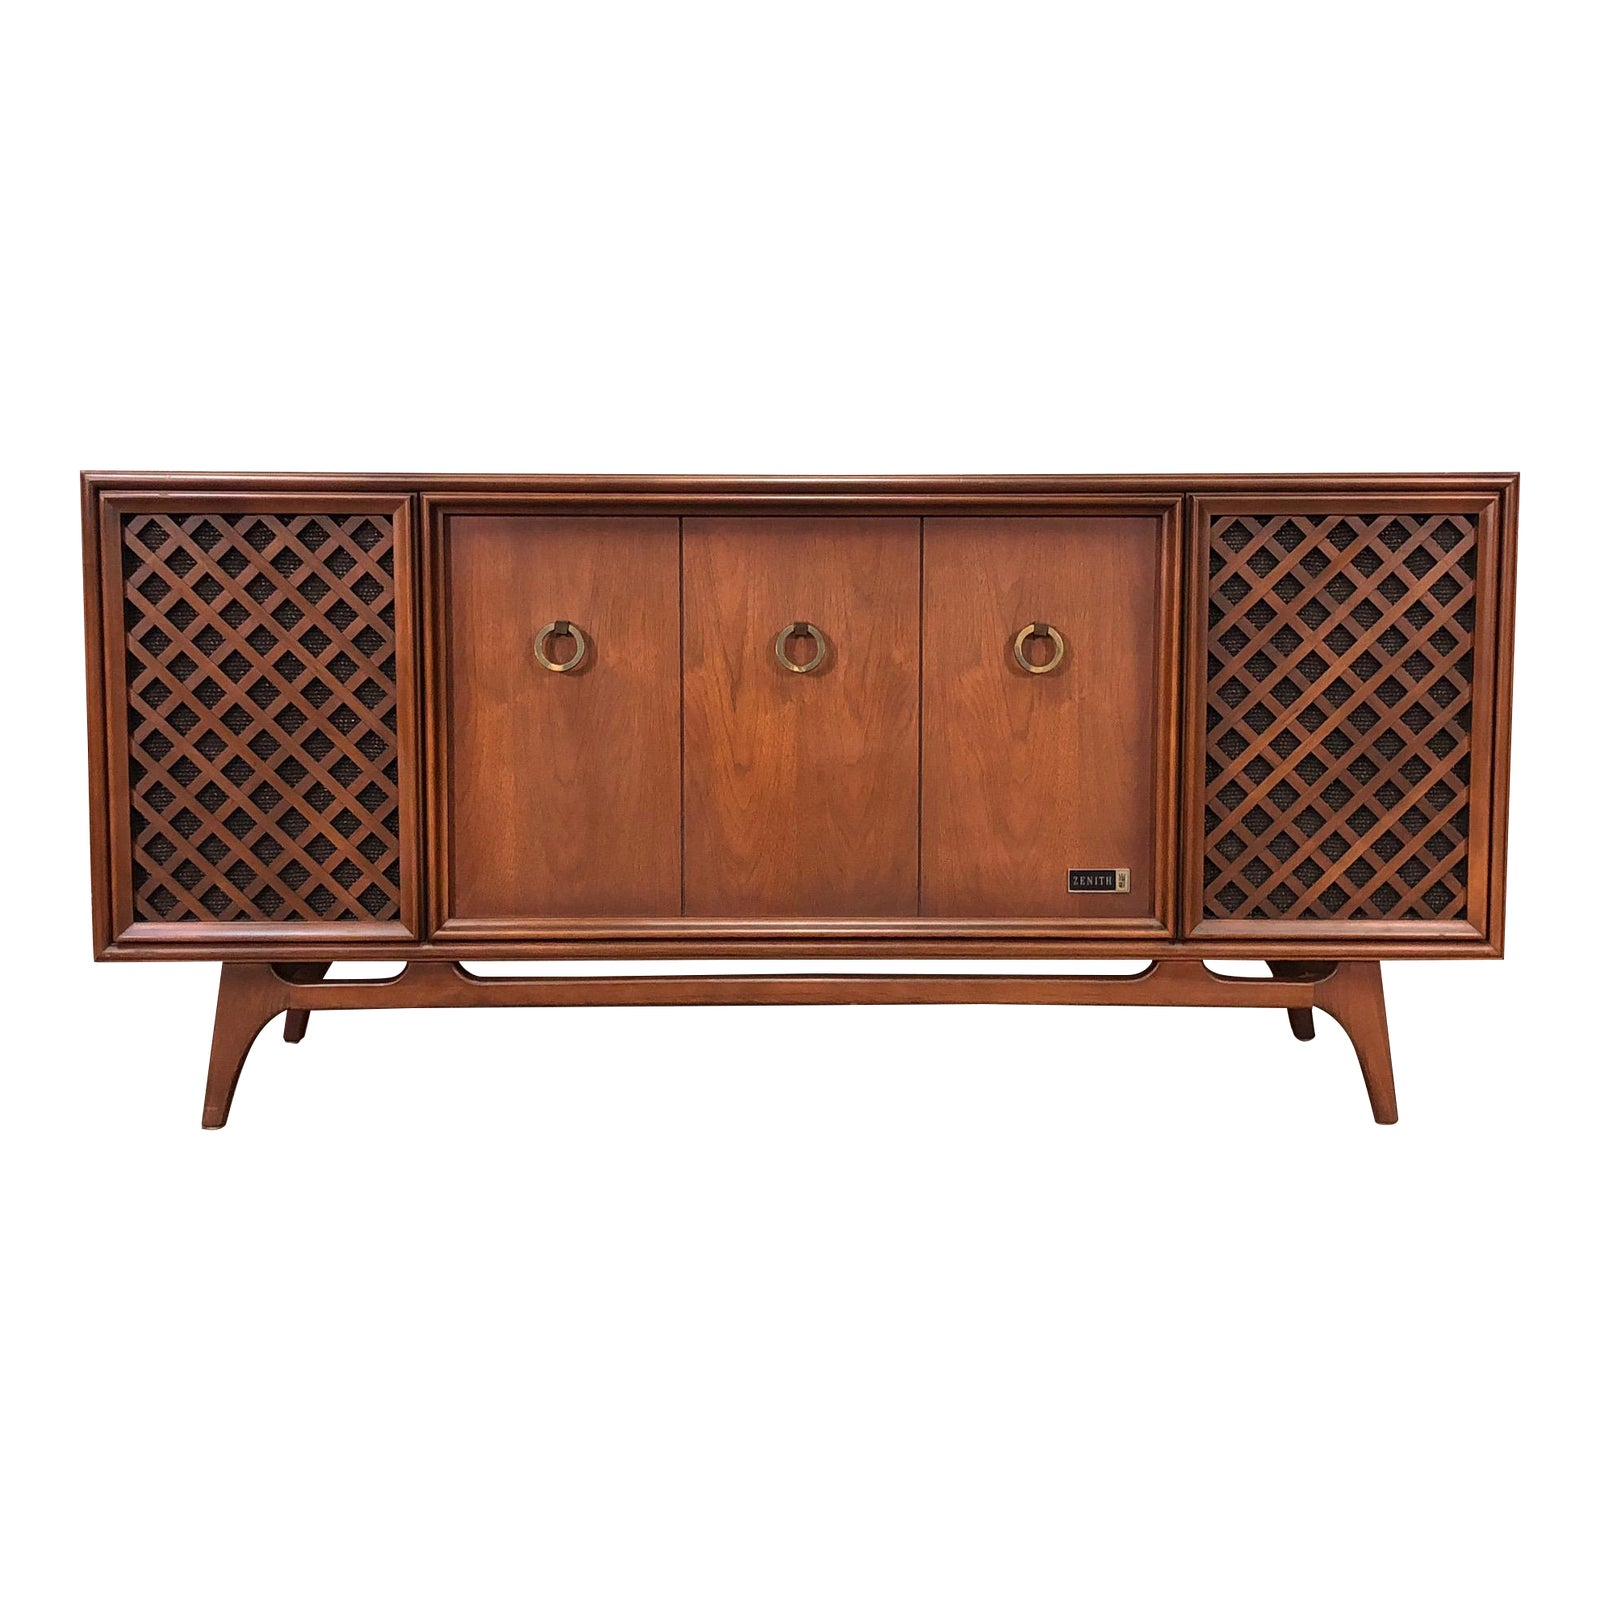 Zenith Mid Century Modern Stereo Console Radio Record Player Tv Stand